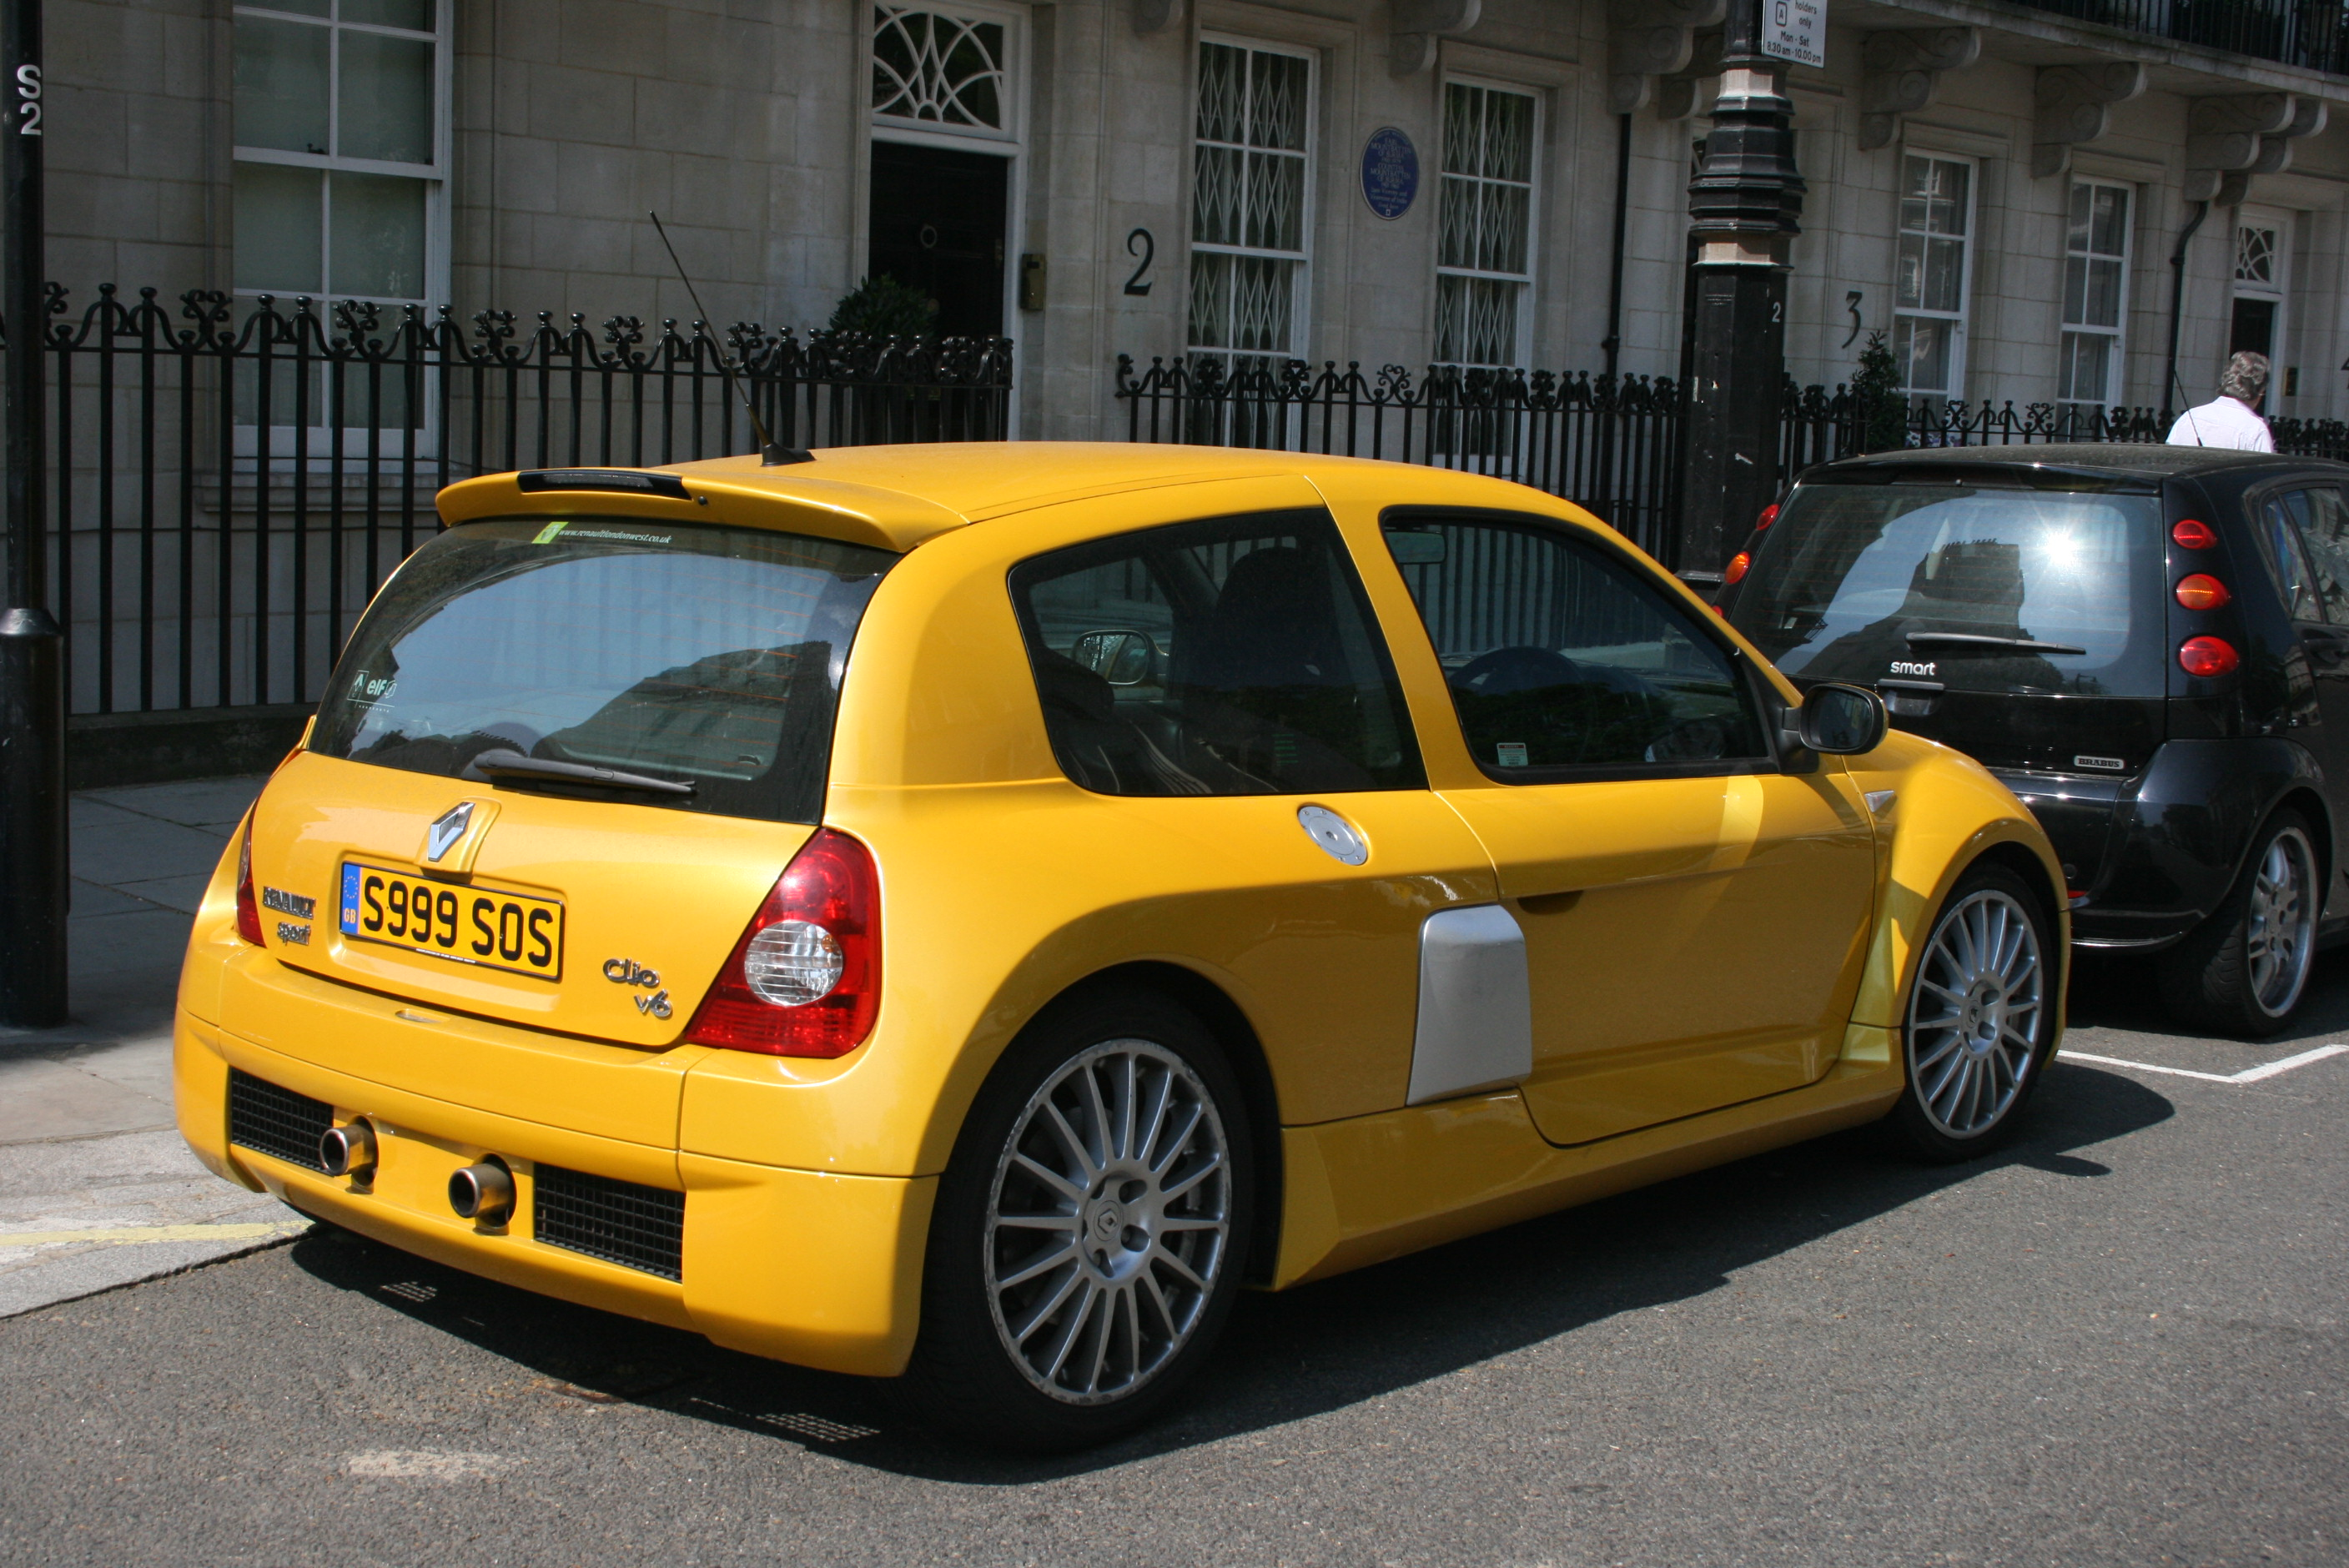 datei renault clio v6 knightsbridge flickr wikipedia. Black Bedroom Furniture Sets. Home Design Ideas